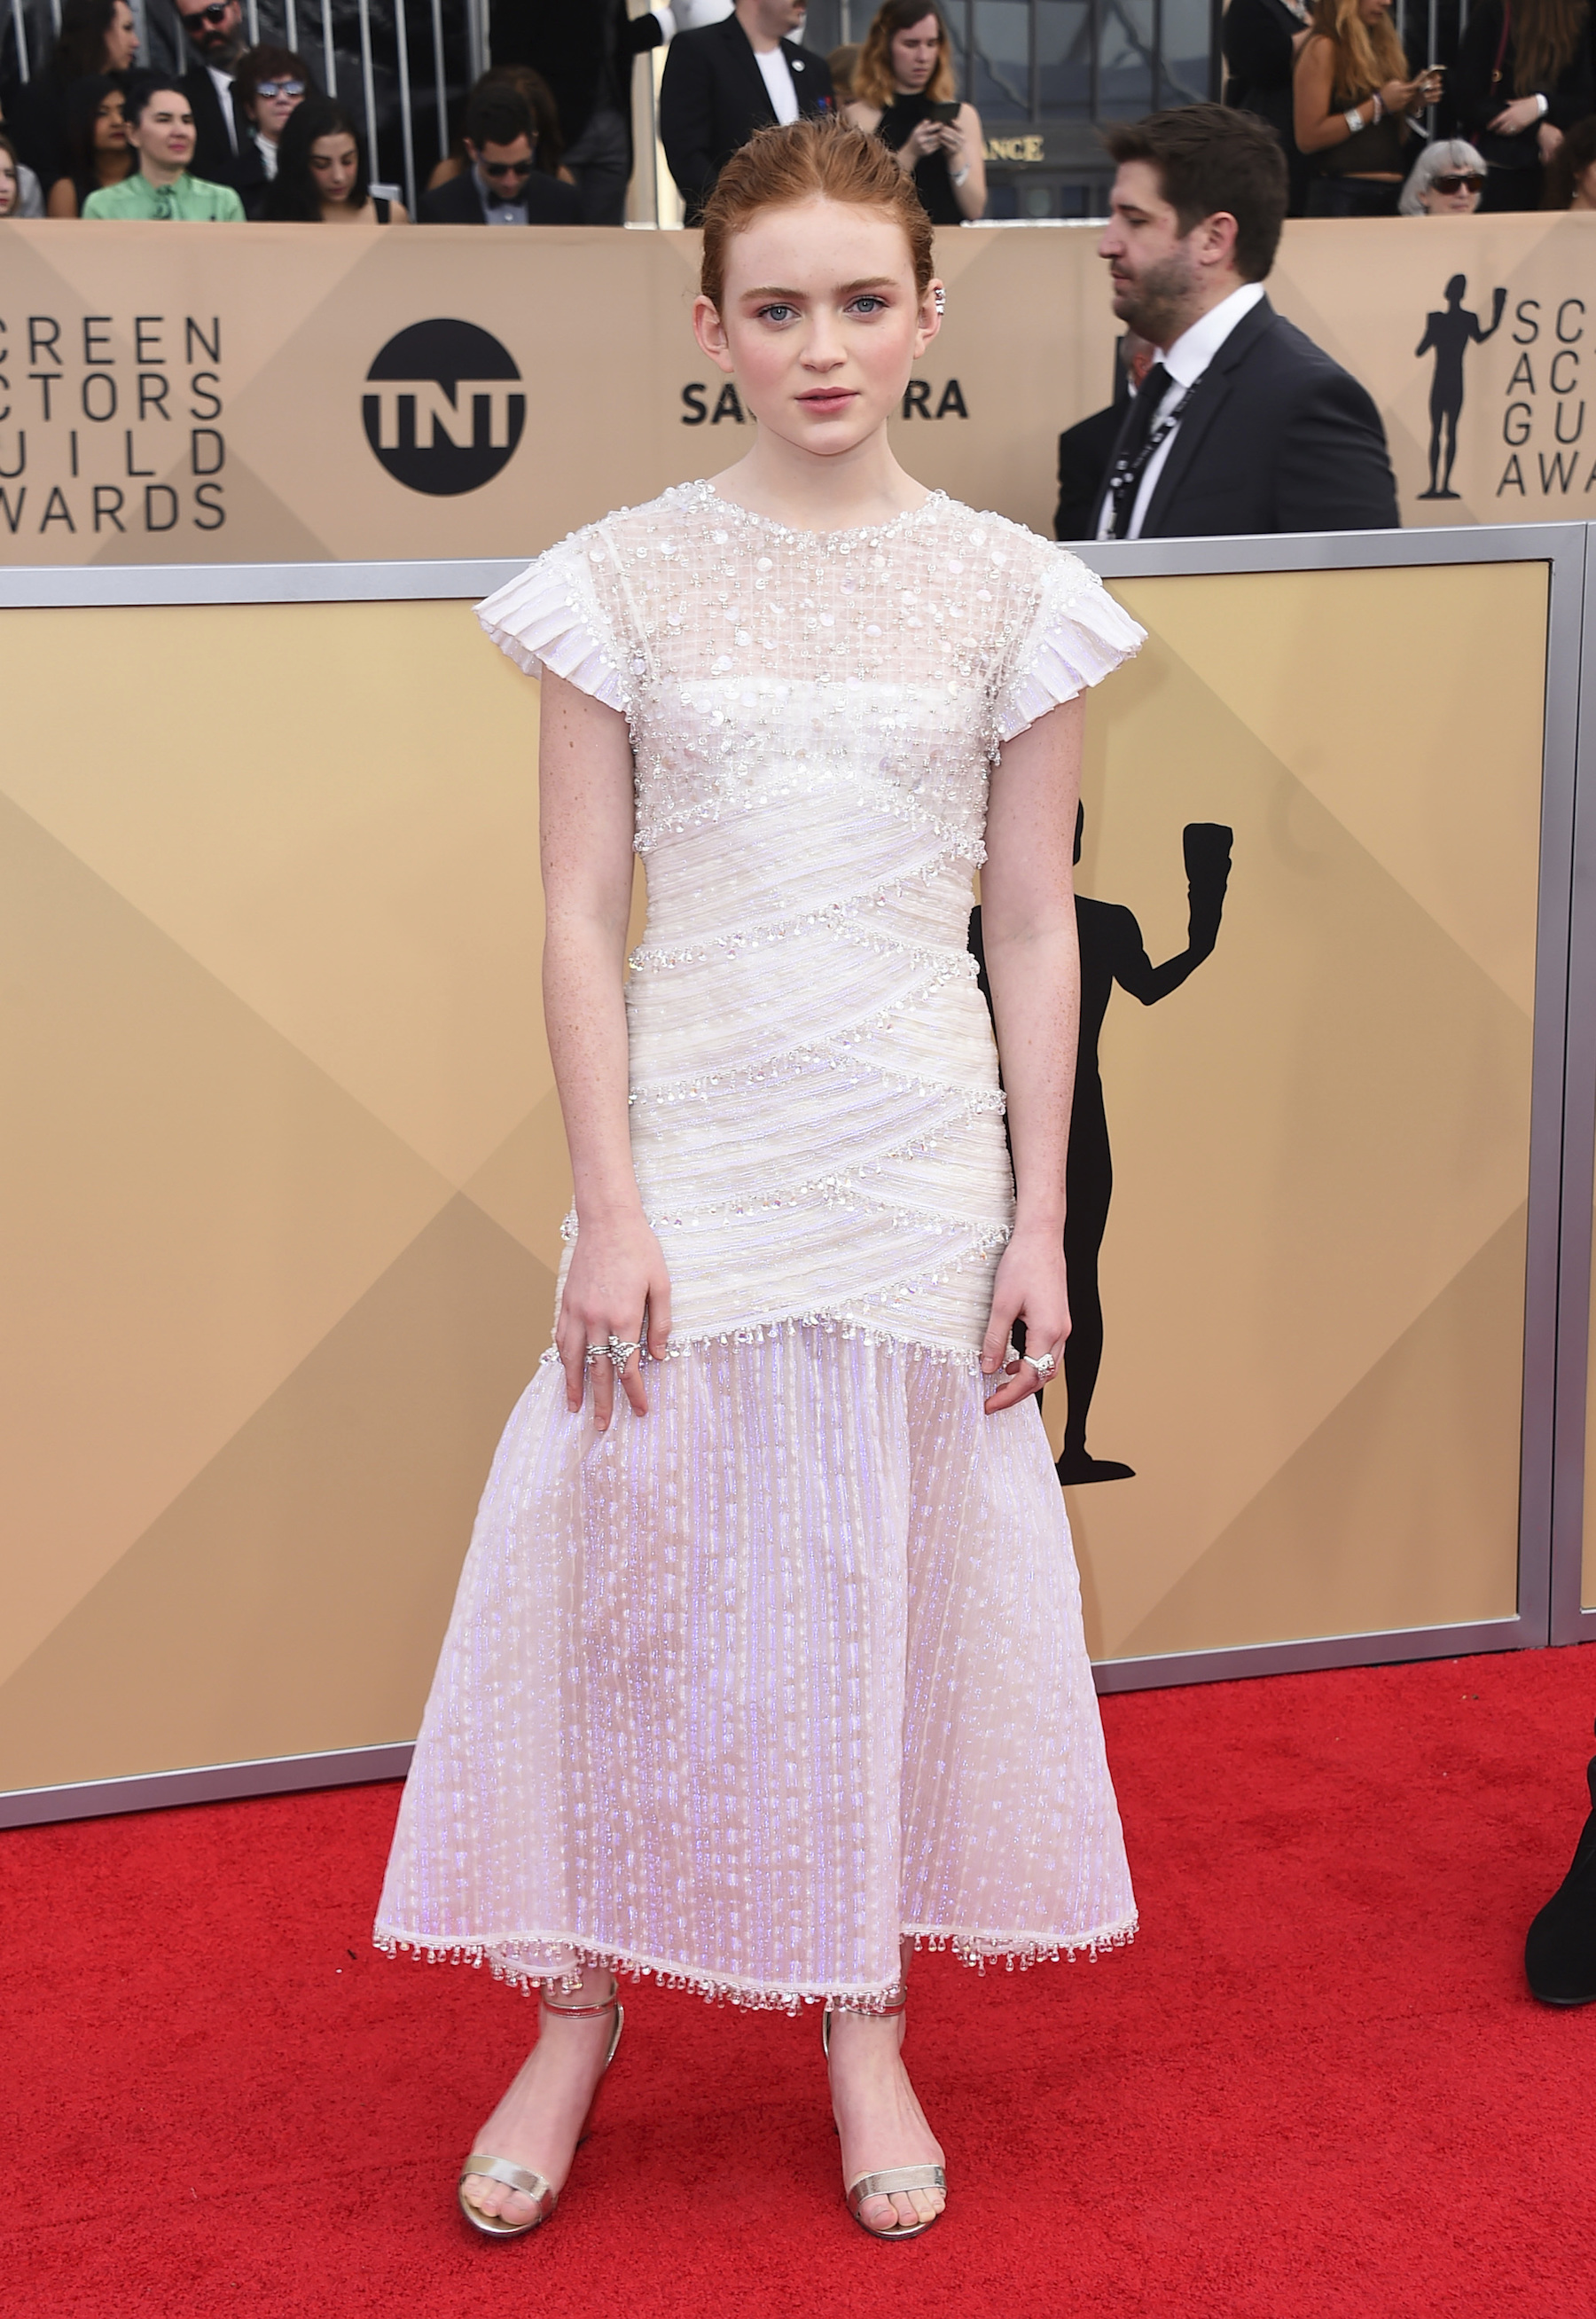 <div class='meta'><div class='origin-logo' data-origin='AP'></div><span class='caption-text' data-credit='Jordan Strauss/Invision/AP'>Sadie Sink arrives at the 24th annual Screen Actors Guild Awards at the Shrine Auditorium & Expo Hall on Sunday, Jan. 21, 2018, in Los Angeles.</span></div>